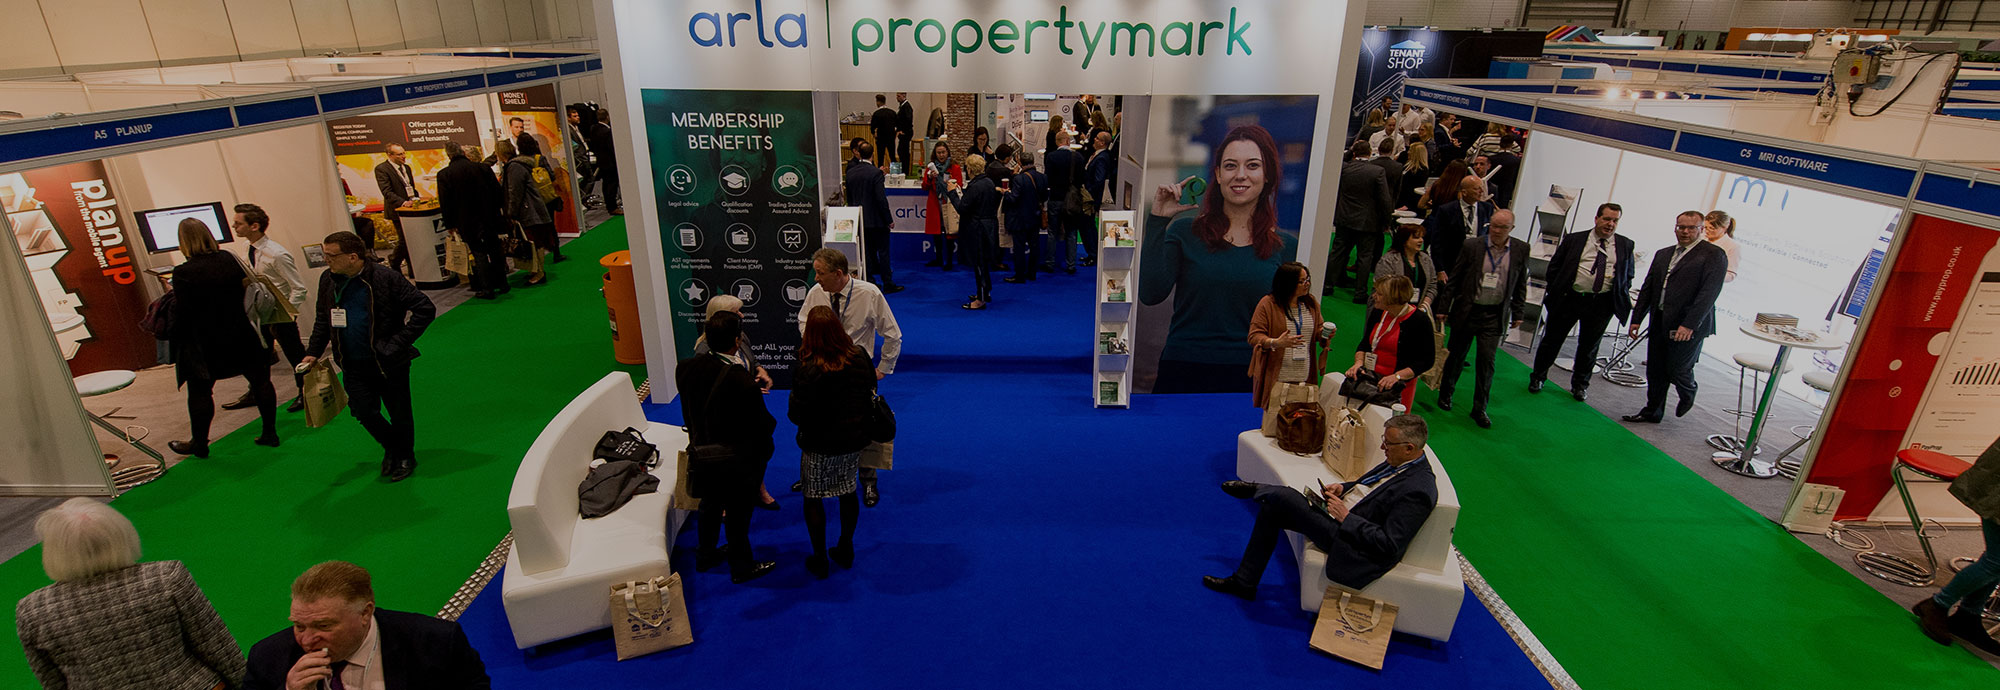 25th ARLA Propertymark Exhibition